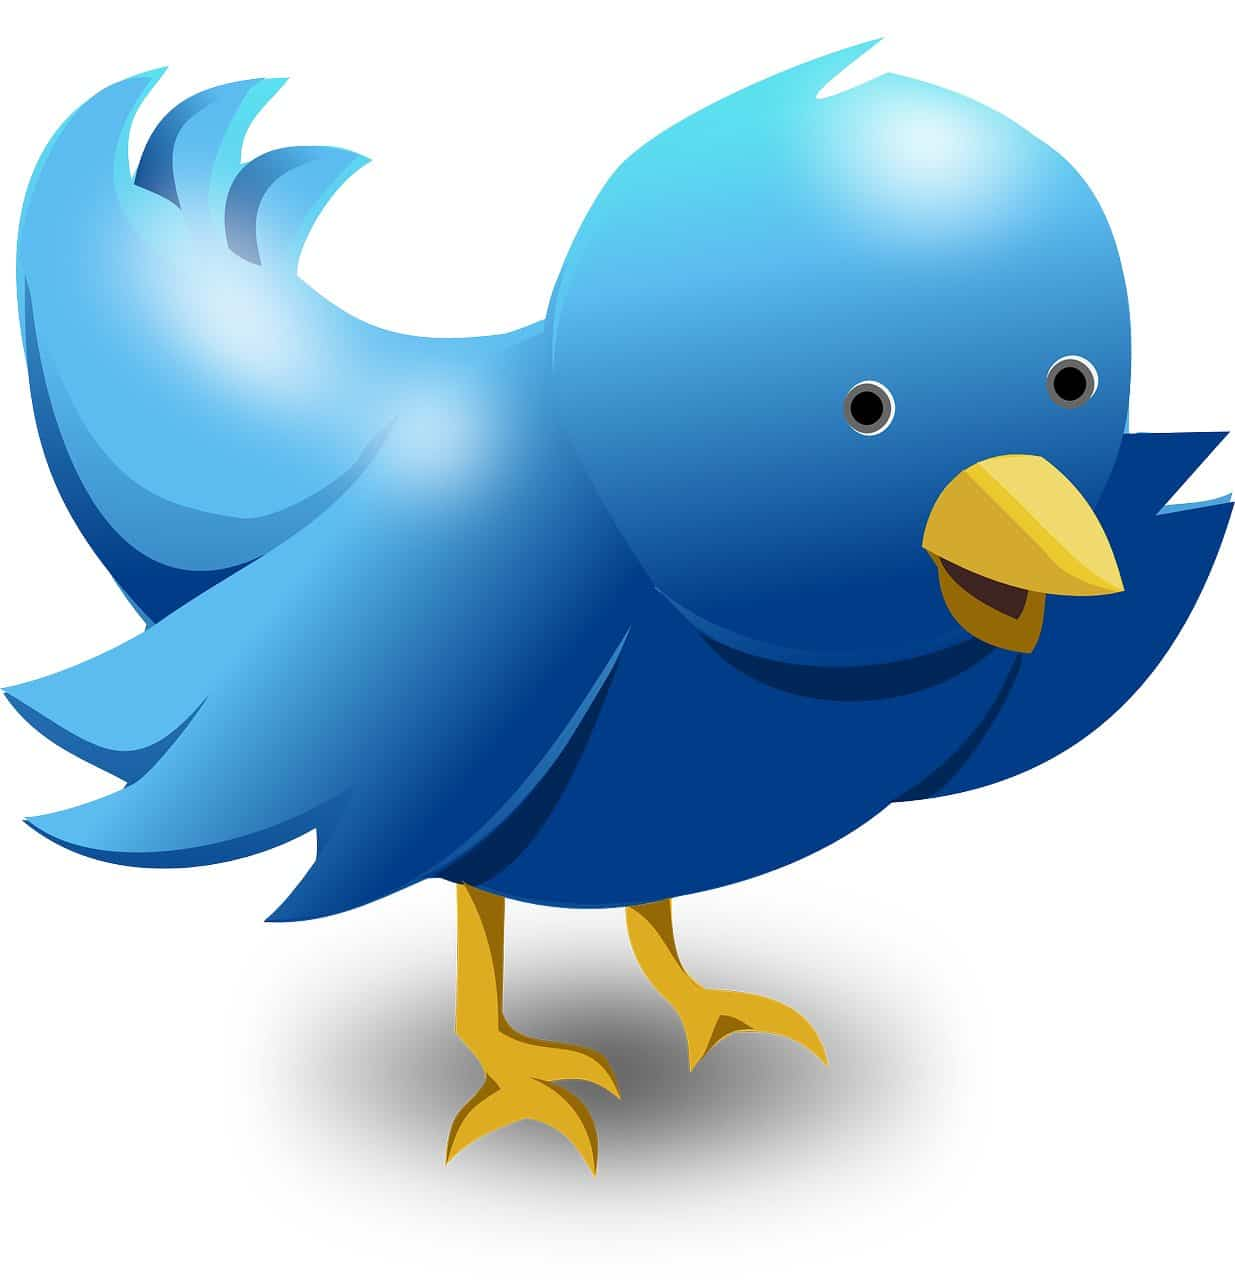 drawbacks of twitter to businesses Tweet with a location you can add location information to your tweets, such as your city or precise location, from the web and via third-party applications.